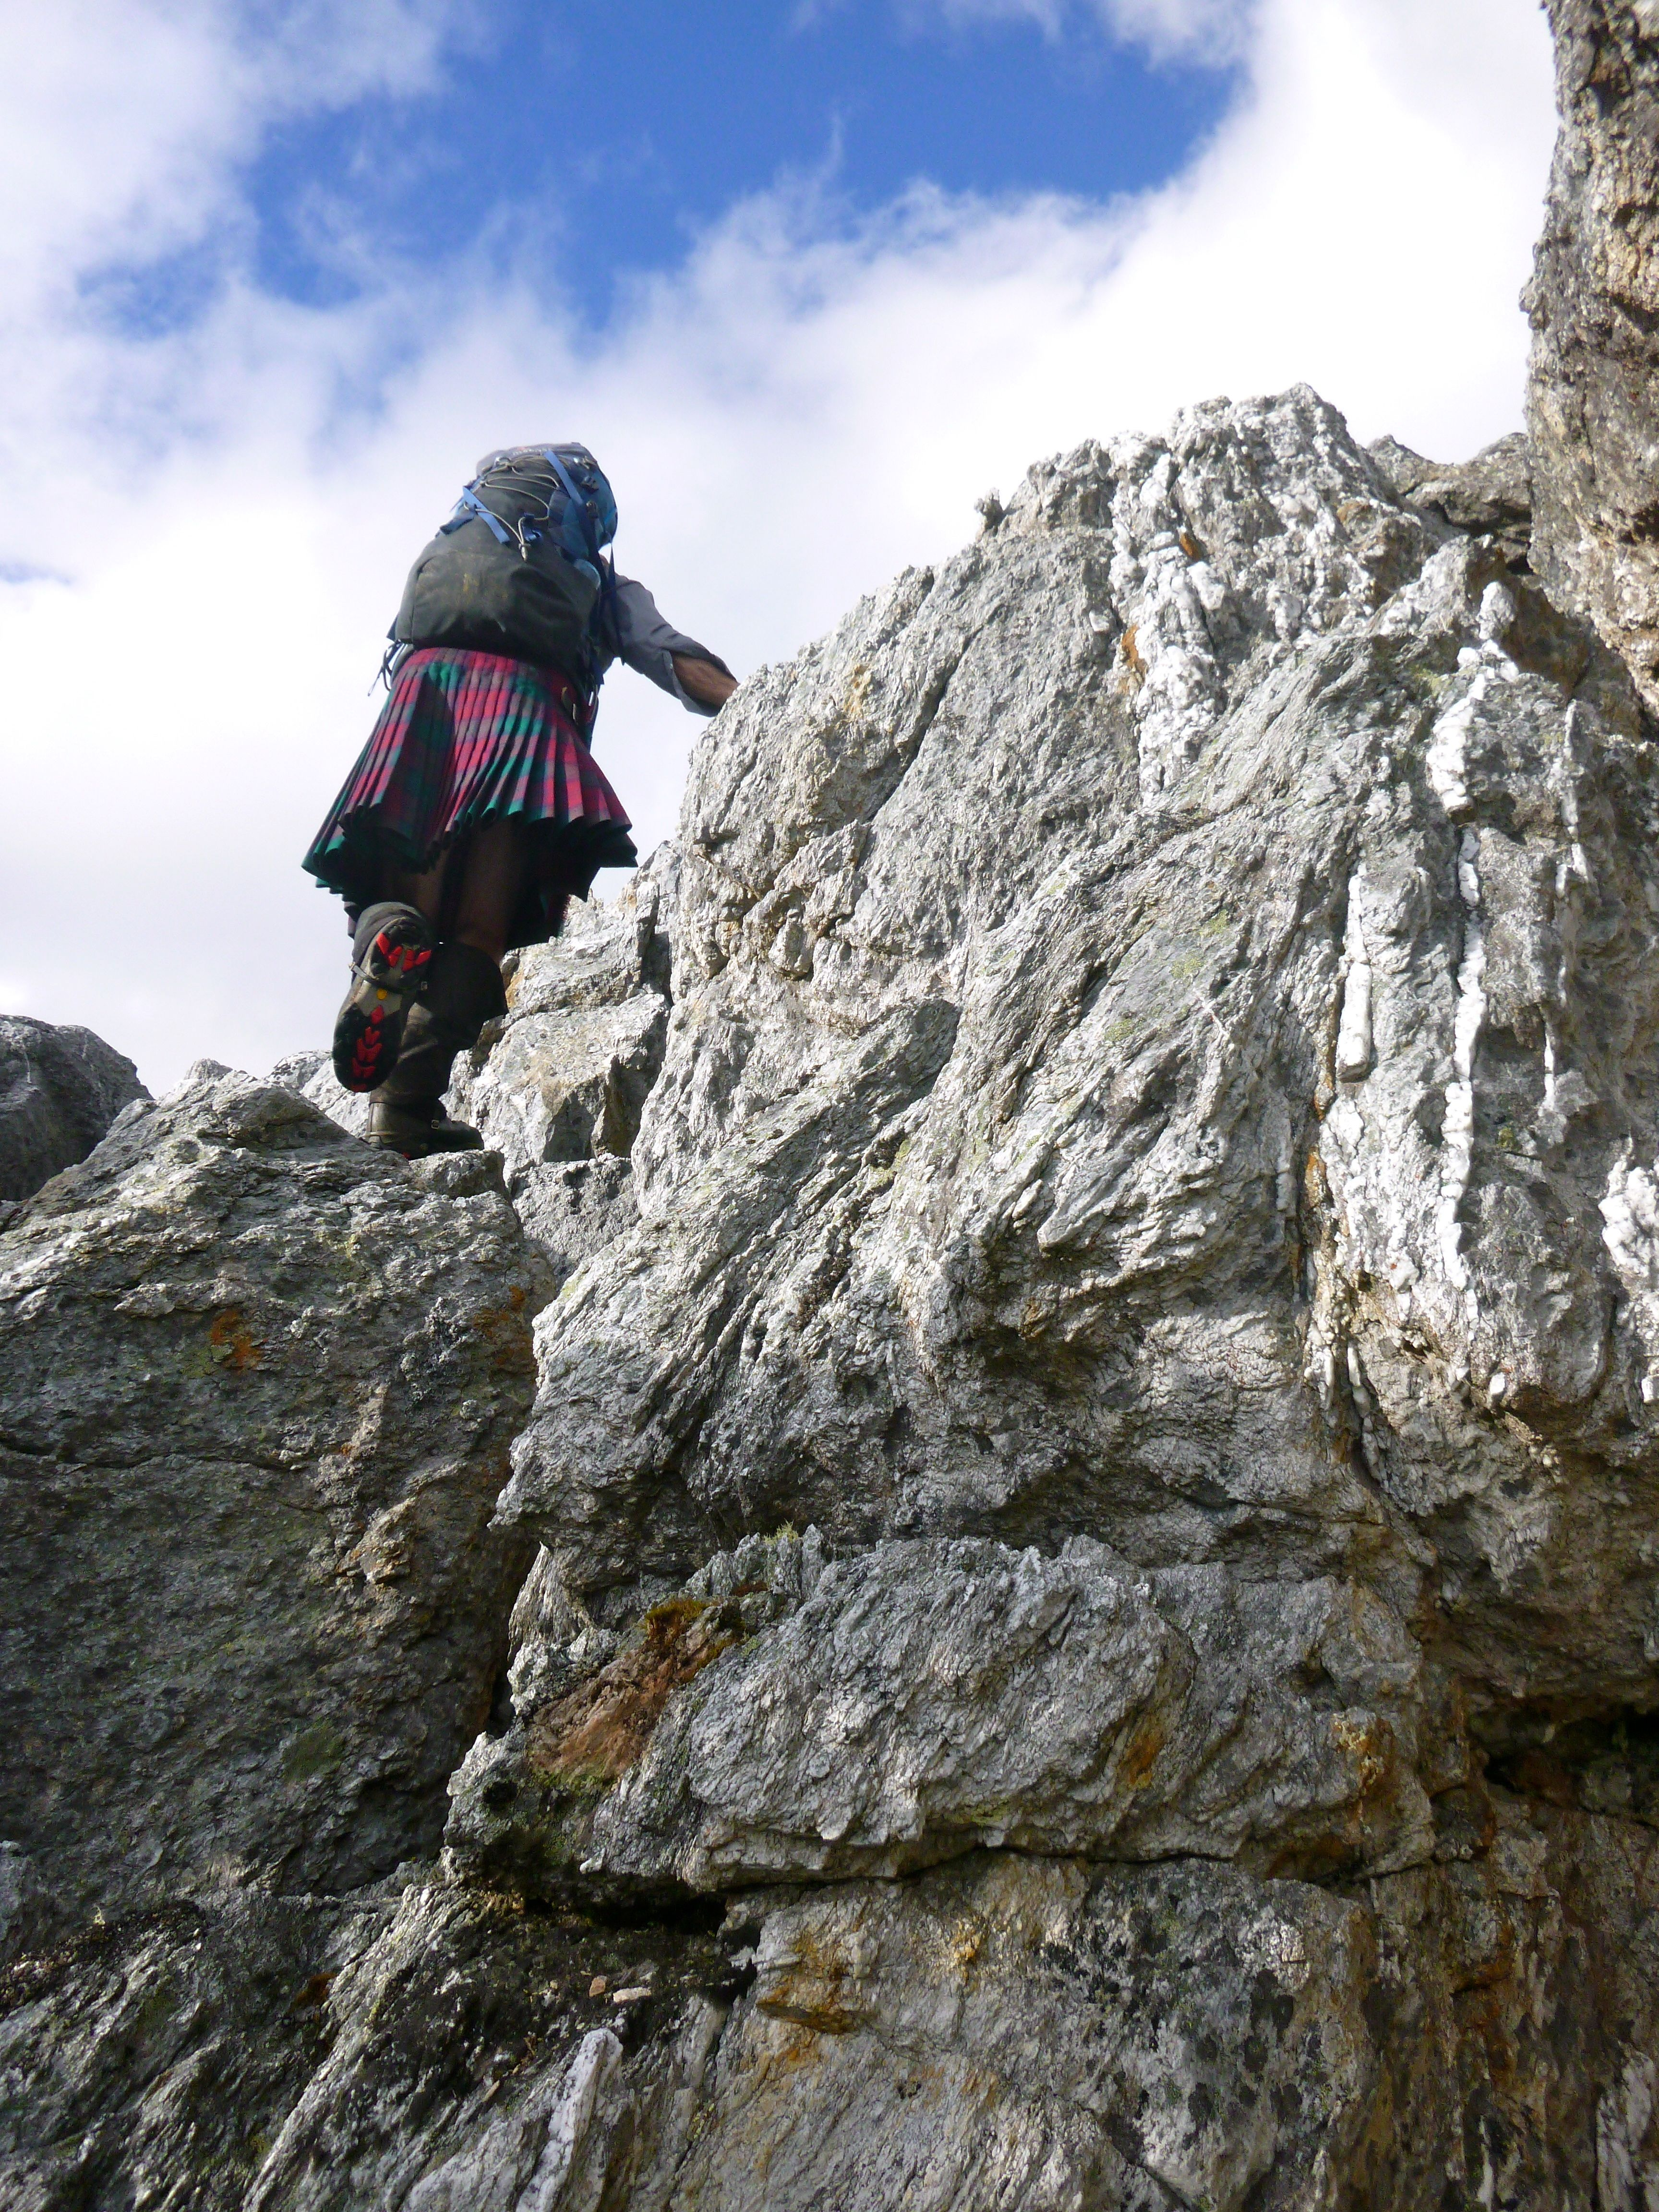 Apparently there's no good reason not to climb in a skirt, or kilt as the case may be!